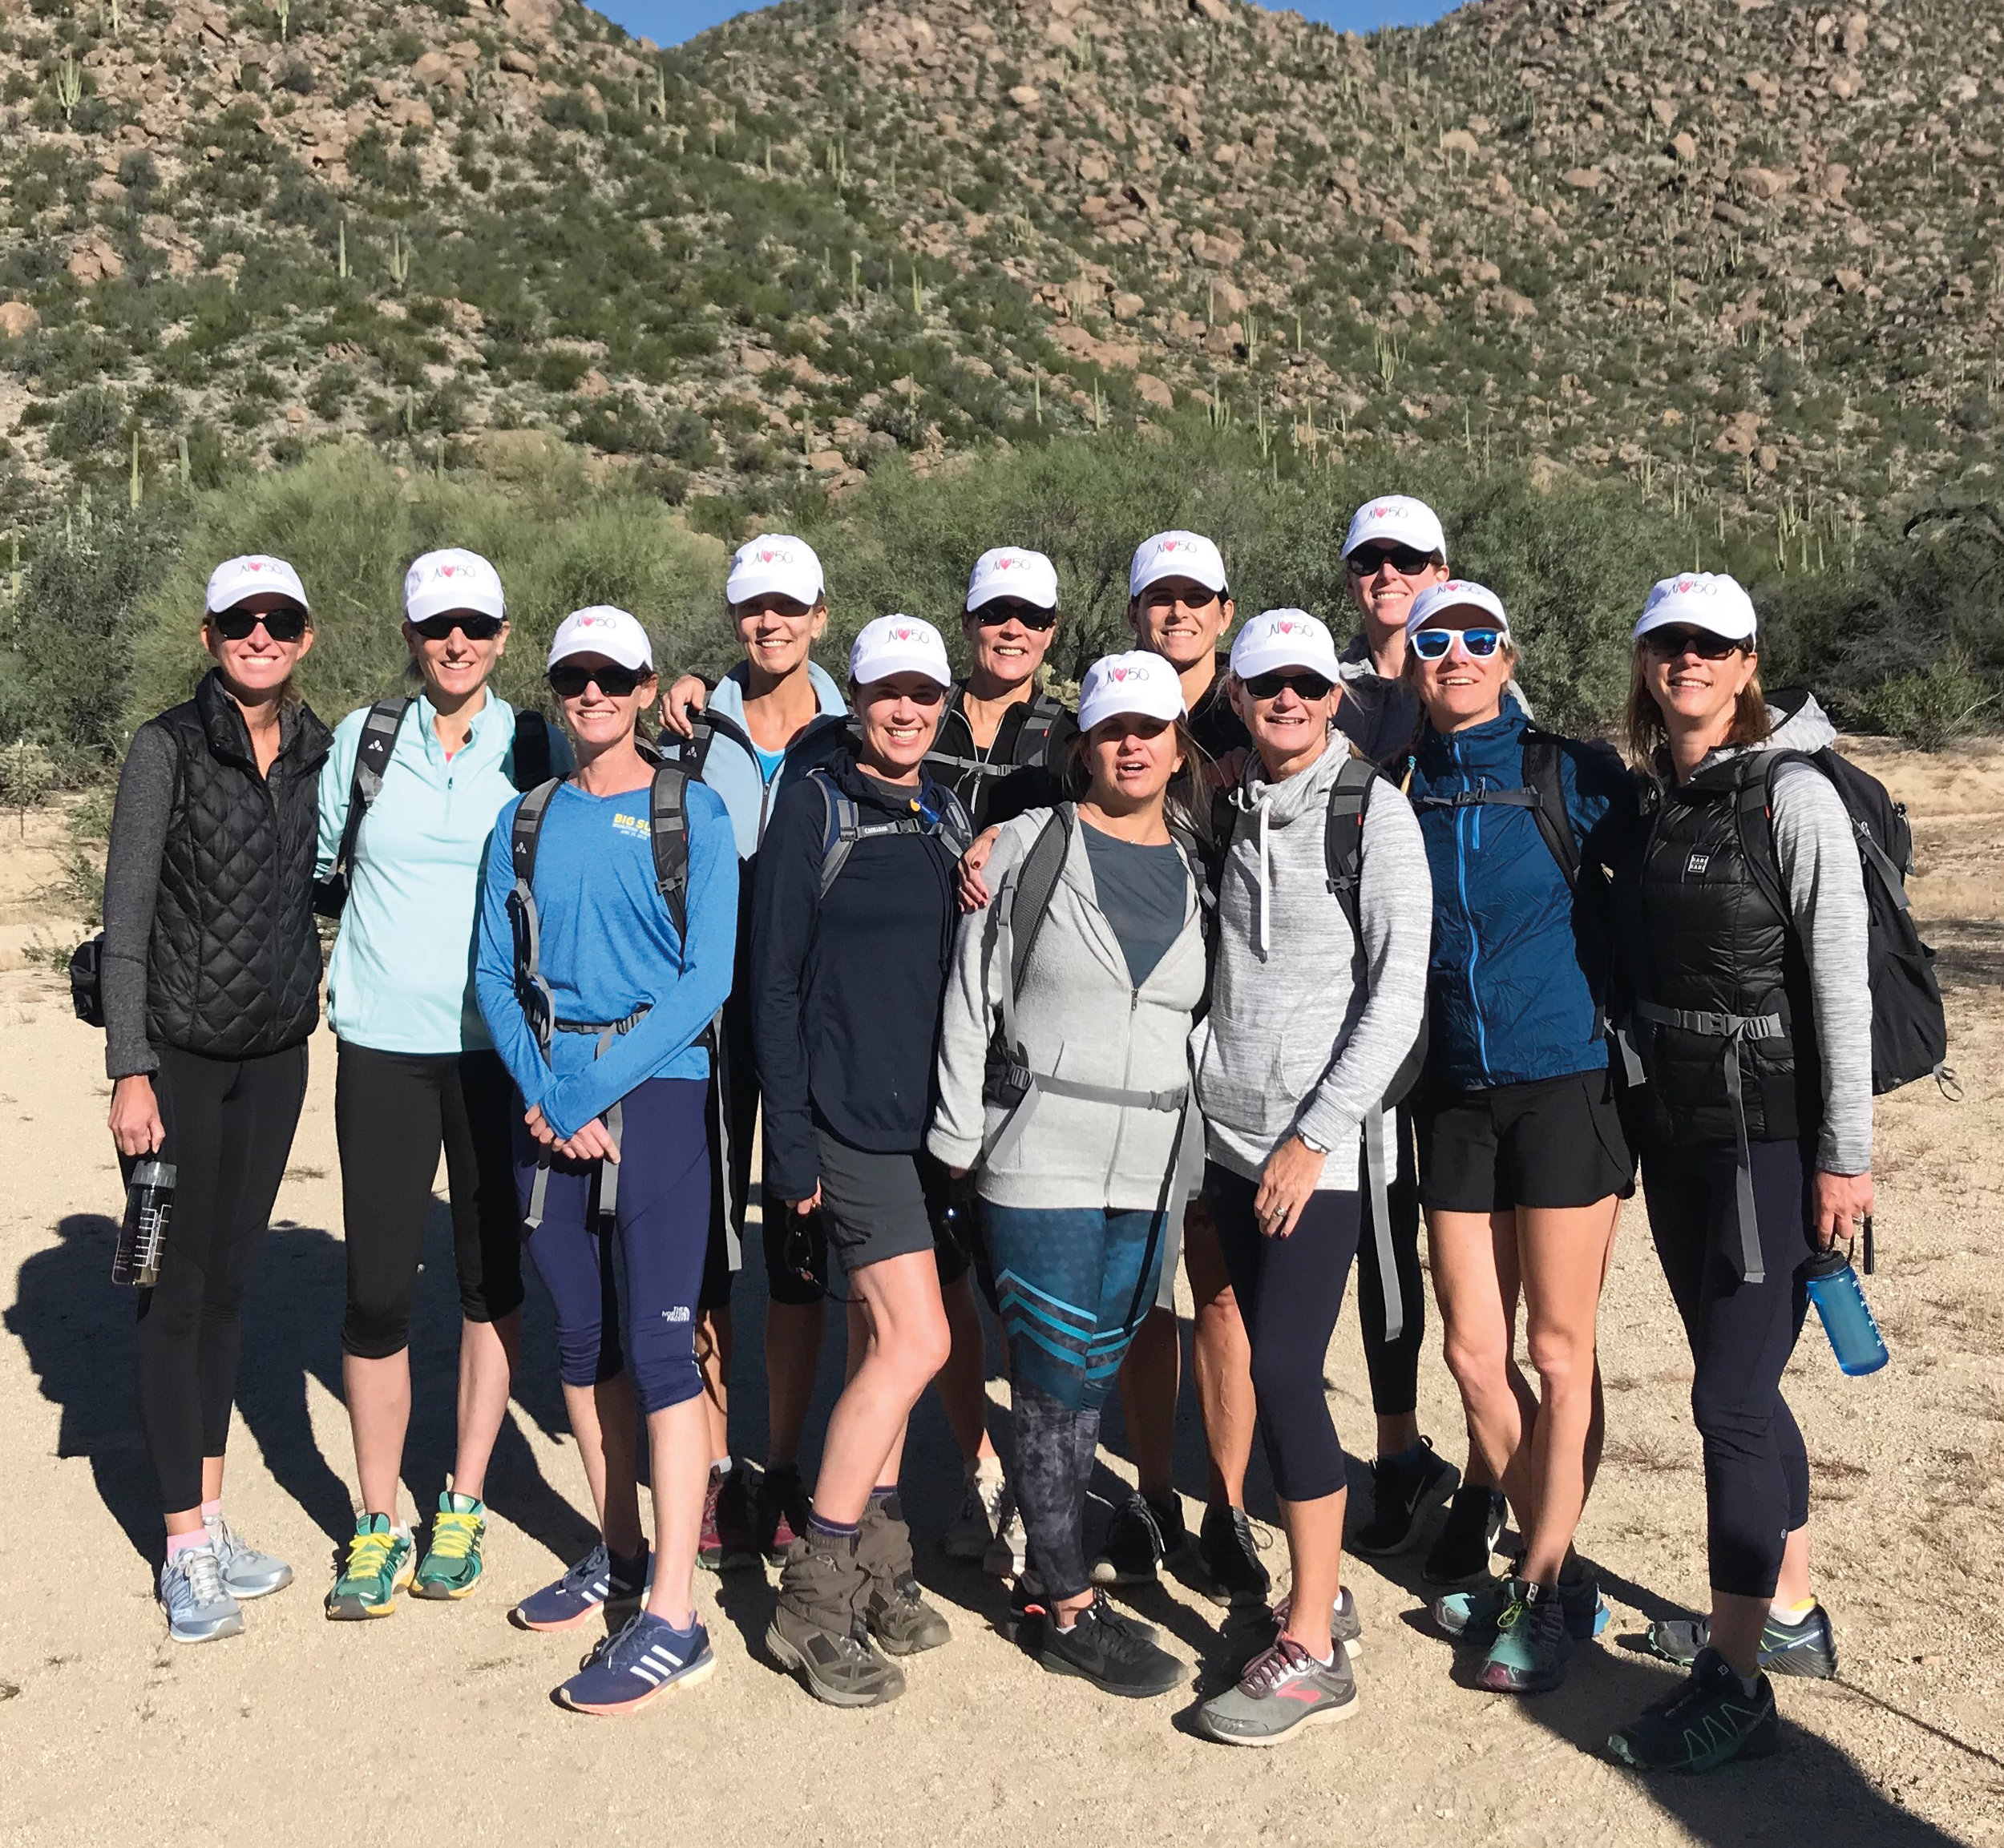 1986 formmates (l. to r.) Nina Ward, Emily Day, Amy Sullivan, Lisa Faber, Abby Walsh, Jill Forney, CeeCee Belford, Beth Lyman, Sarah Whittle, Pam Lloyd, Kathy Kuhn, and Tracy Barsotti came to Arizona for Sullivan's 50th birthday hike.